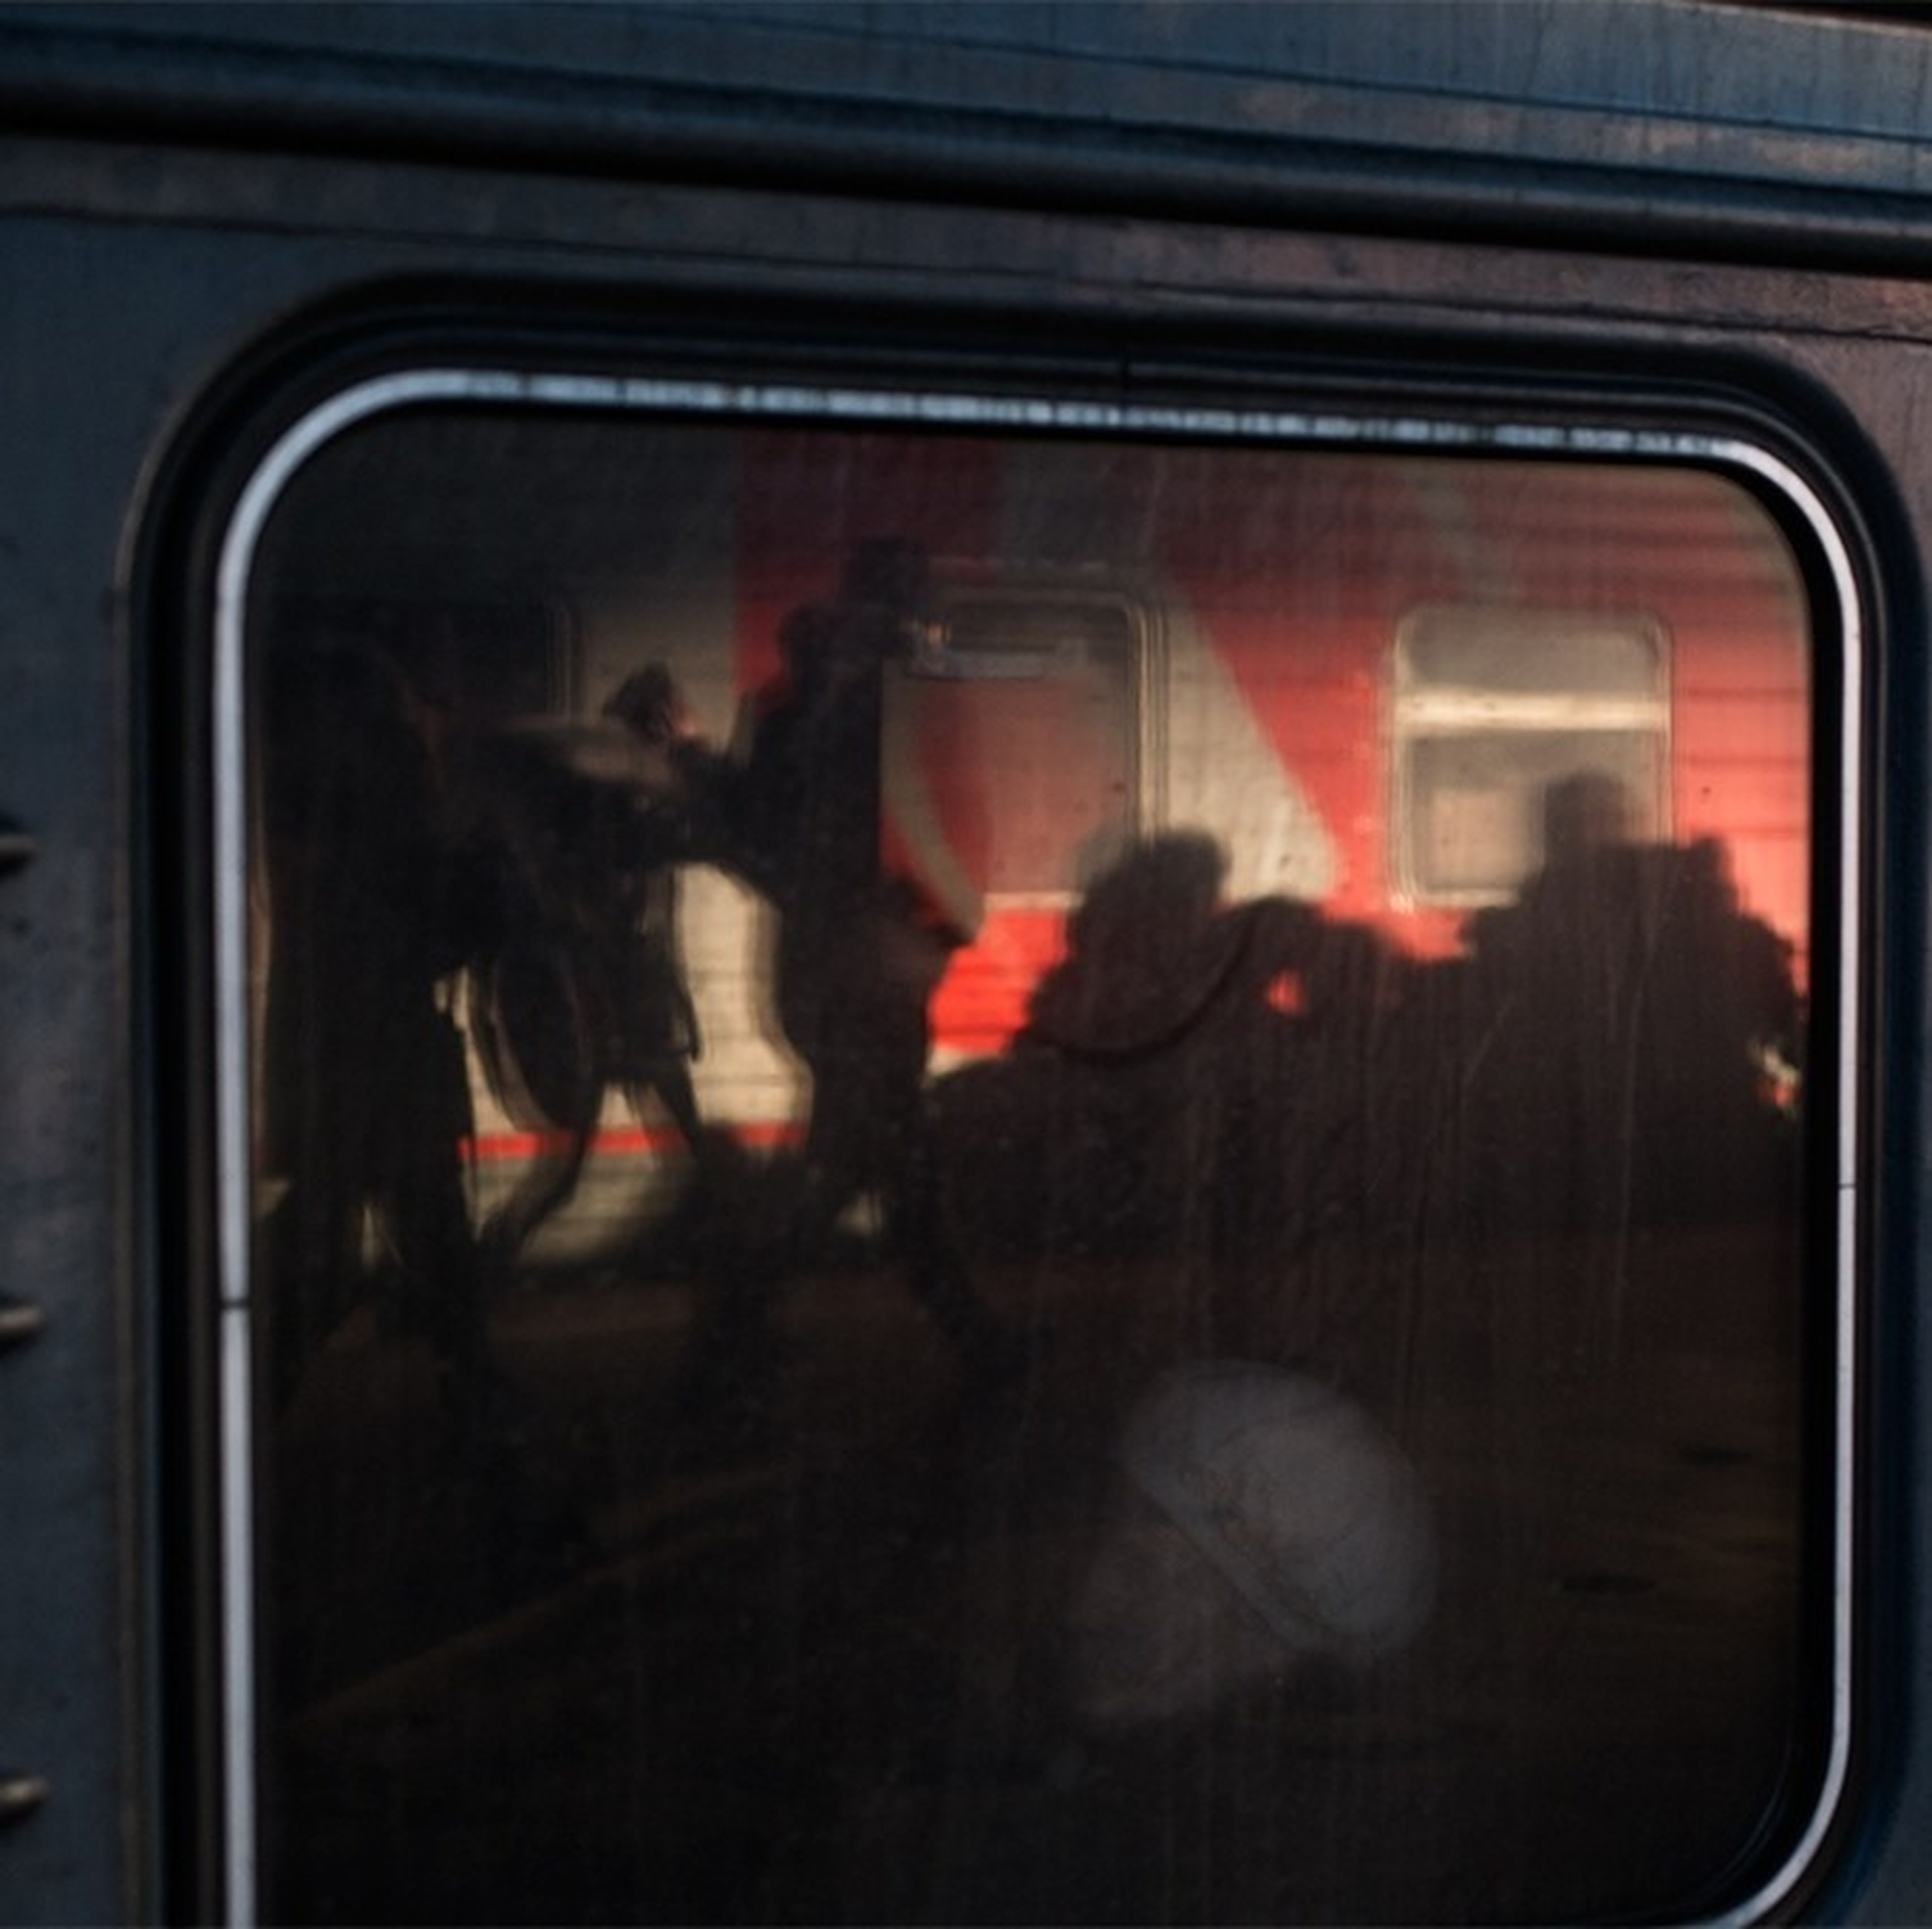 transportation, mode of transport, window, glass - material, indoors, men, lifestyles, transparent, land vehicle, leisure activity, public transportation, person, vehicle interior, travel, reflection, car, train - vehicle, blurred motion